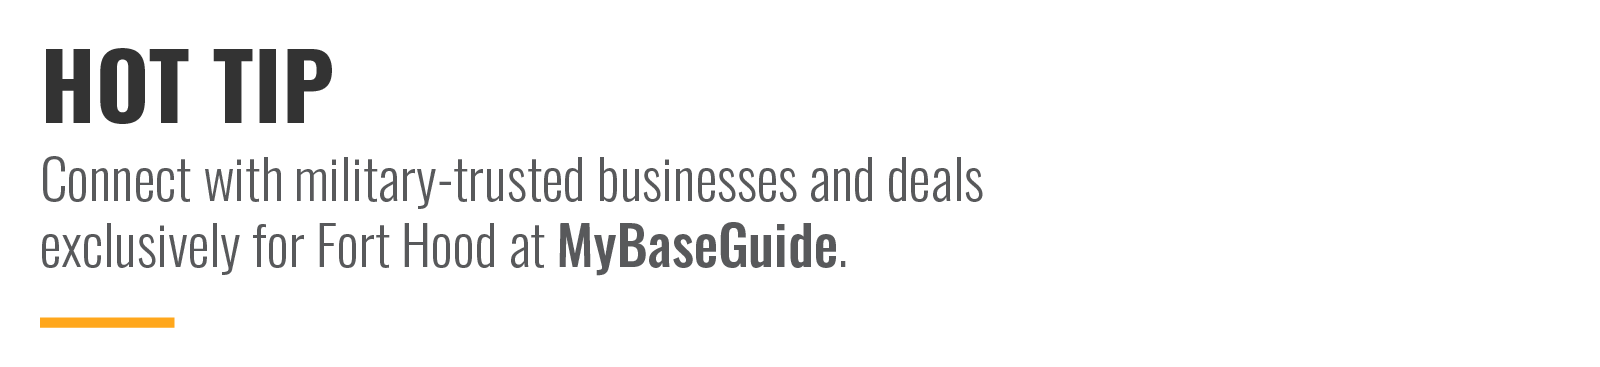 Connect with military-trusted businesses and deals exclusively for Fort Bliss